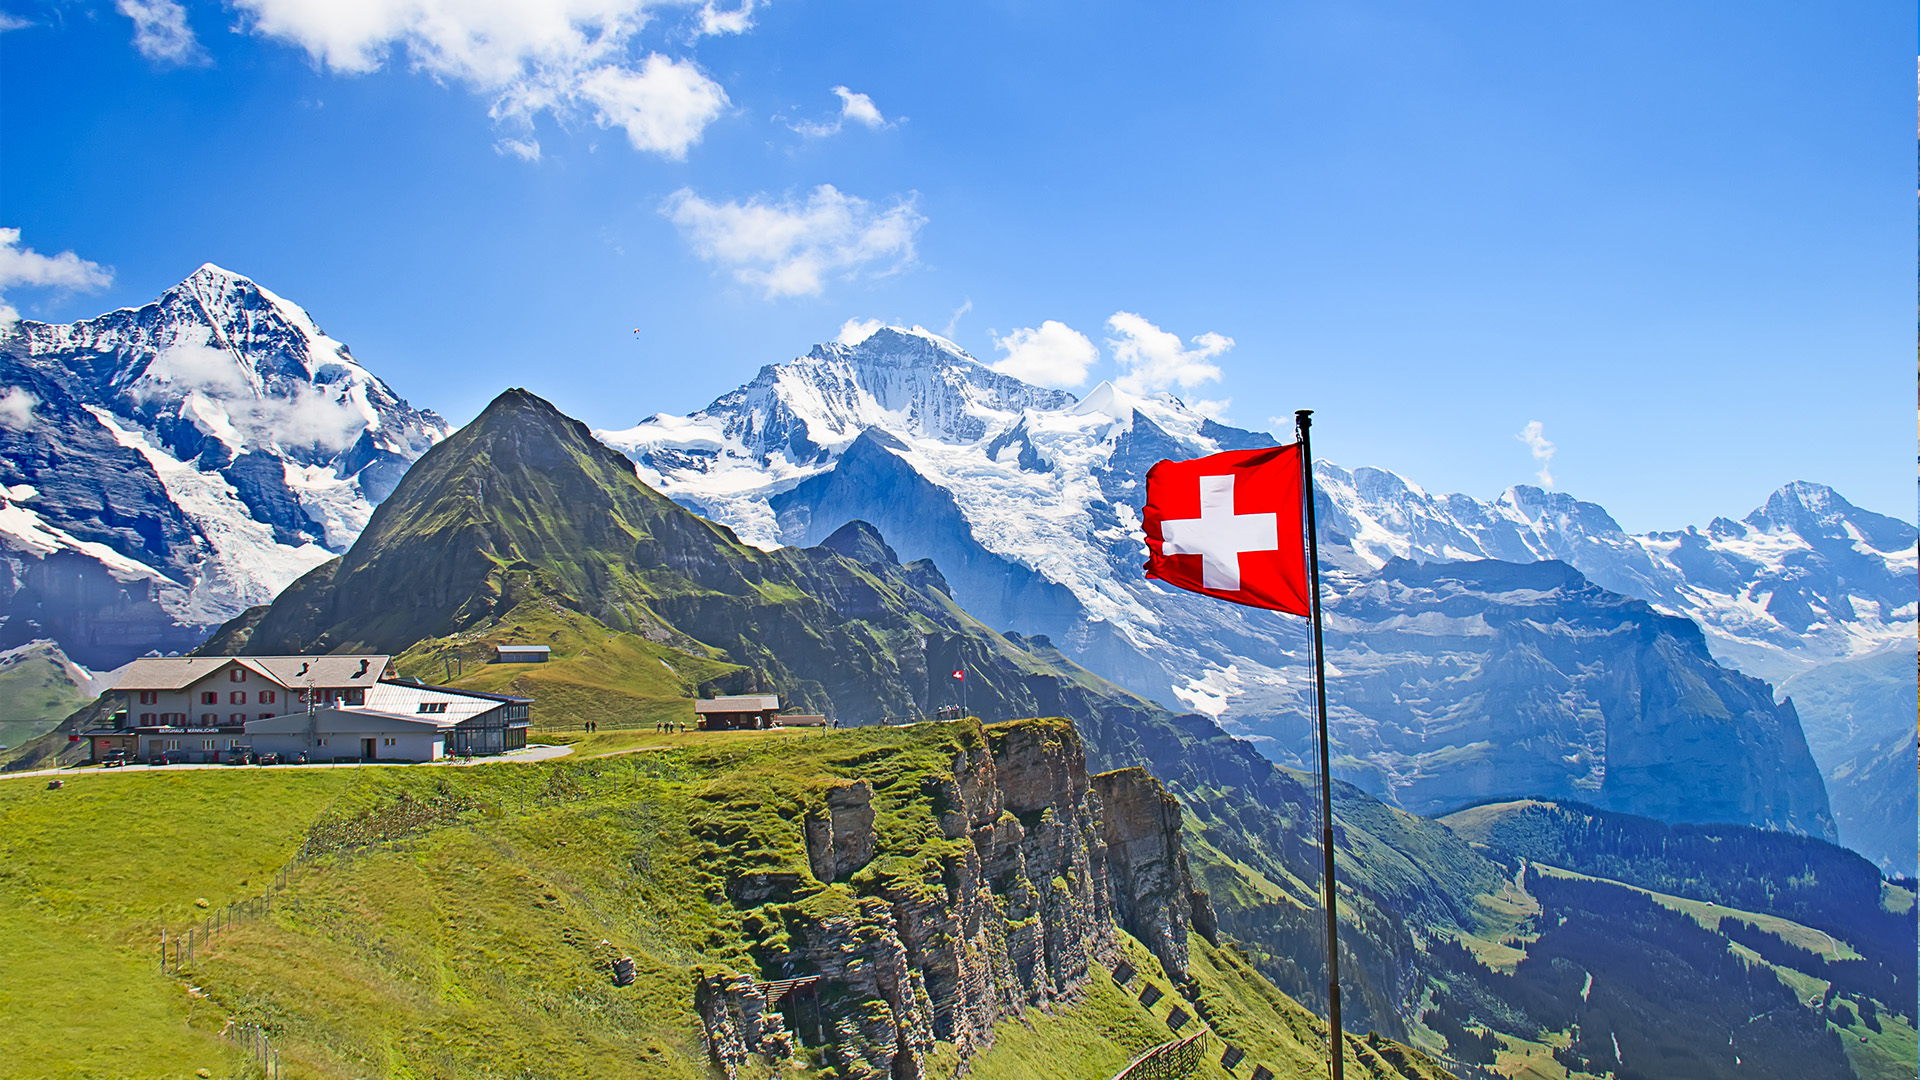 7 Day Europe Tour - London, Paris, for swiss countryside wallpaper 29dqh